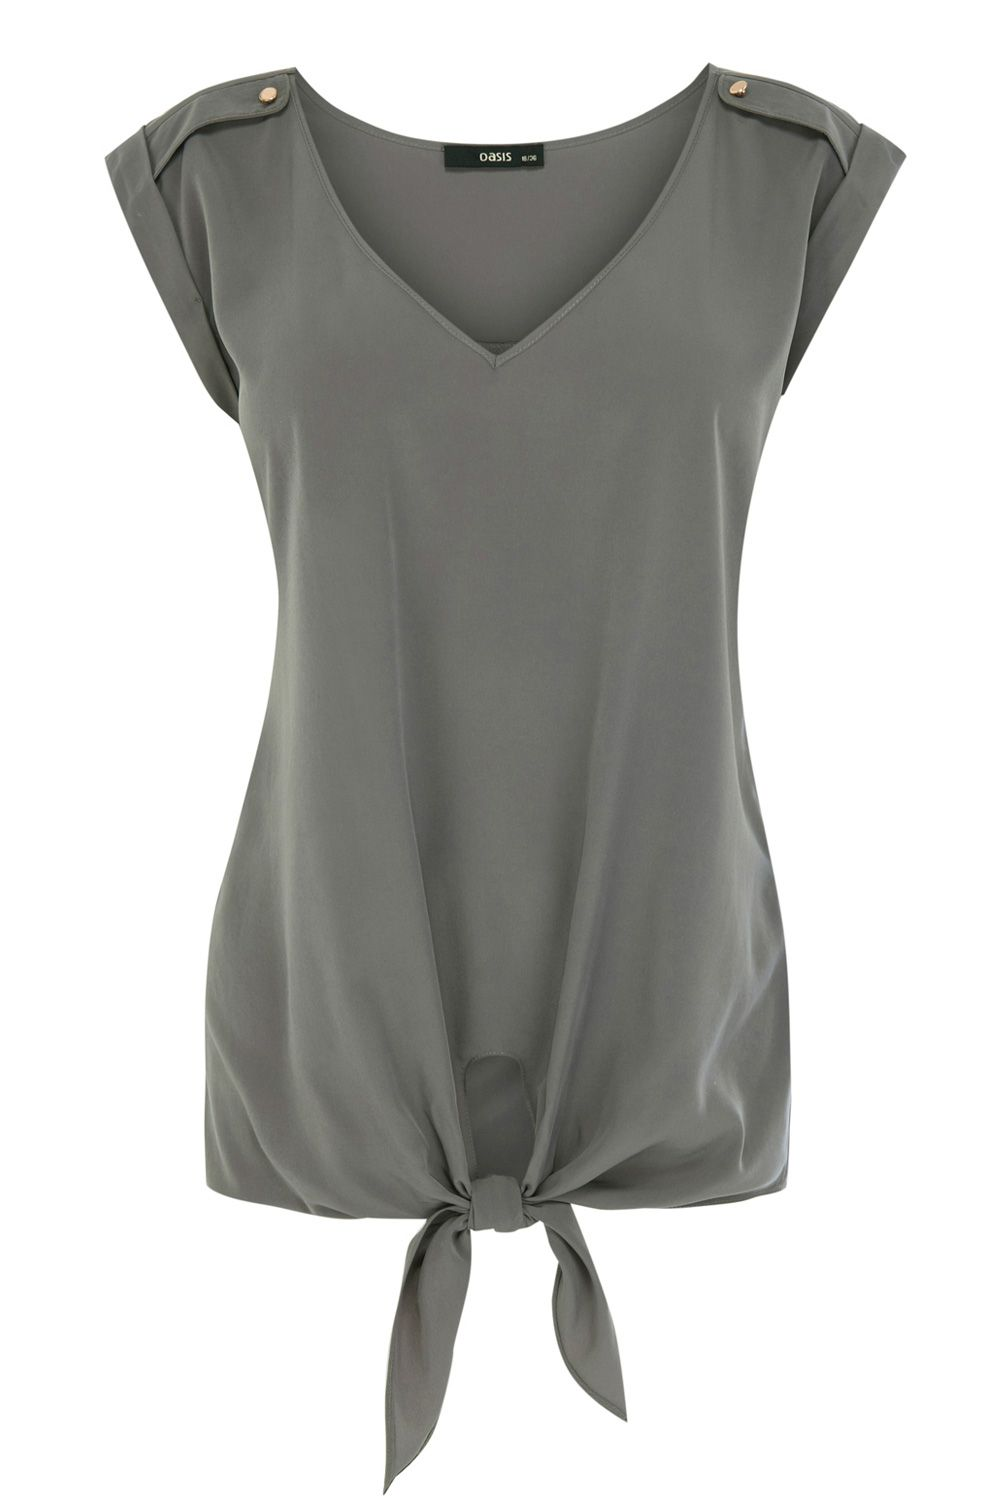 Button shoulder v neck top